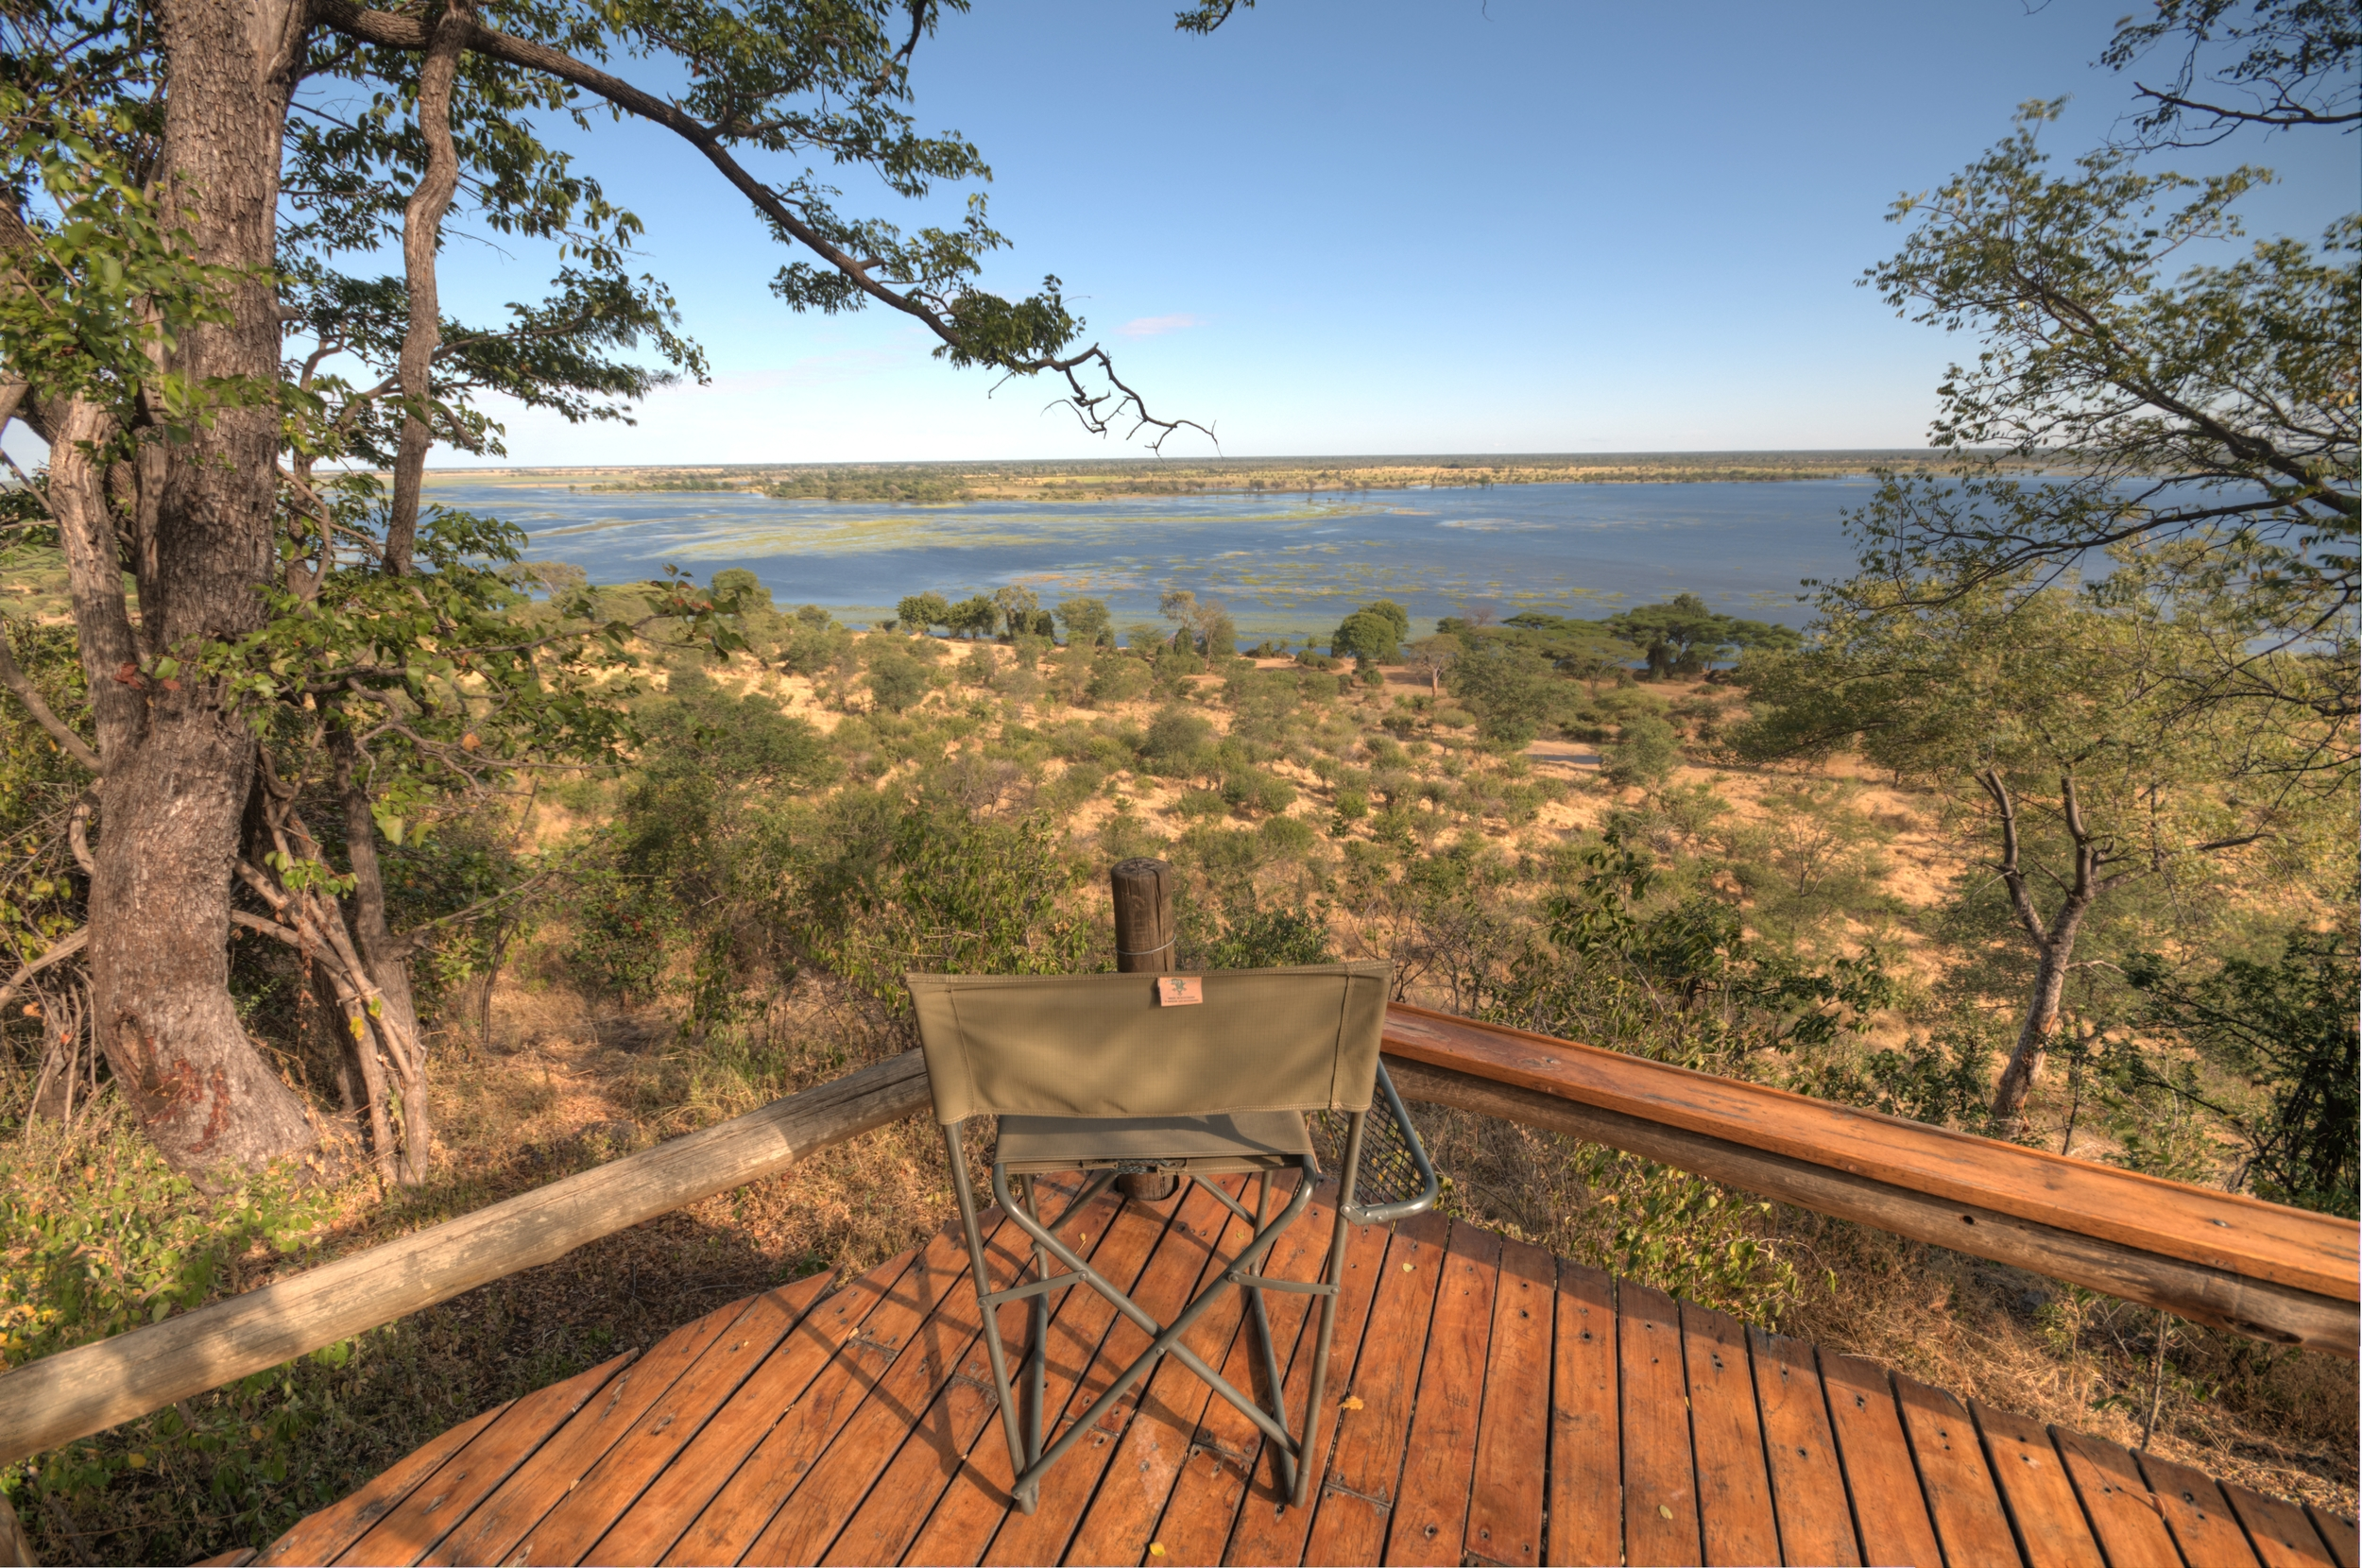 View on the Chobe River